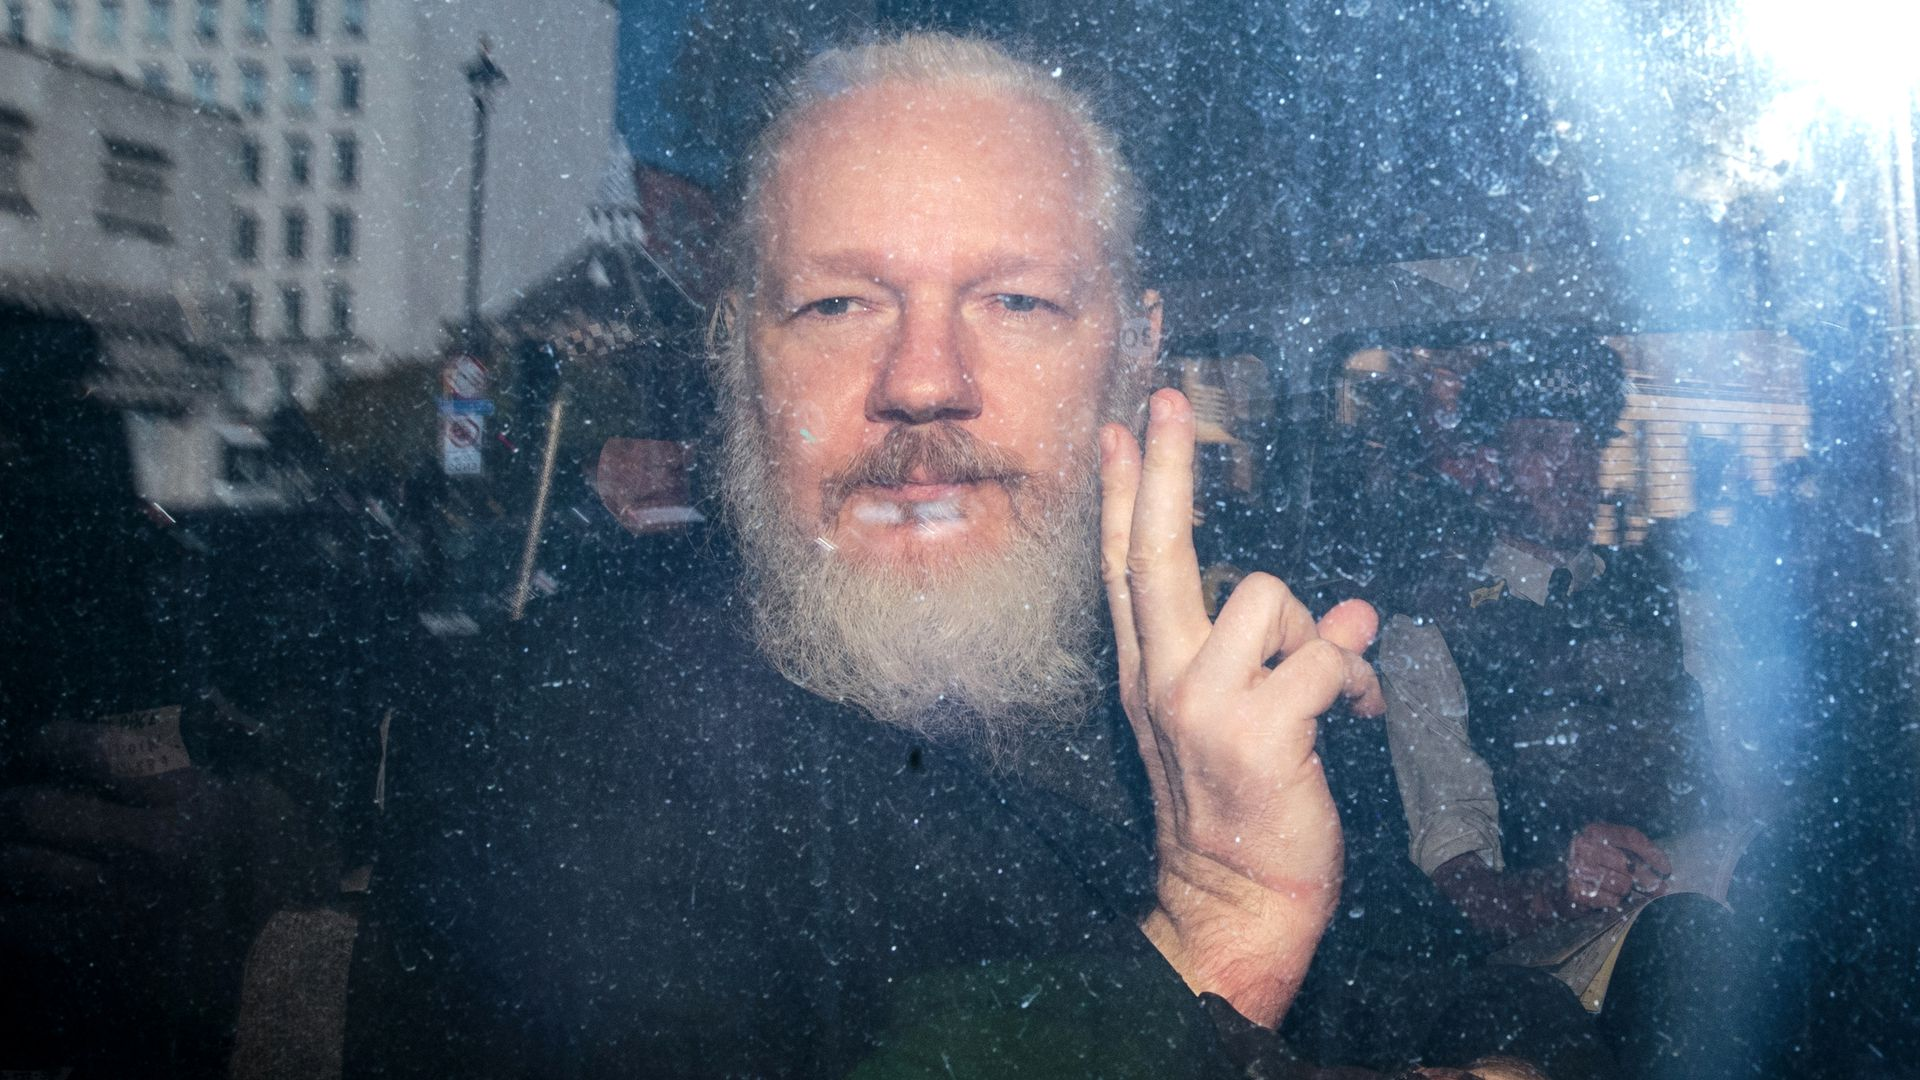 Assange makes a peace sign at the camera in this image.